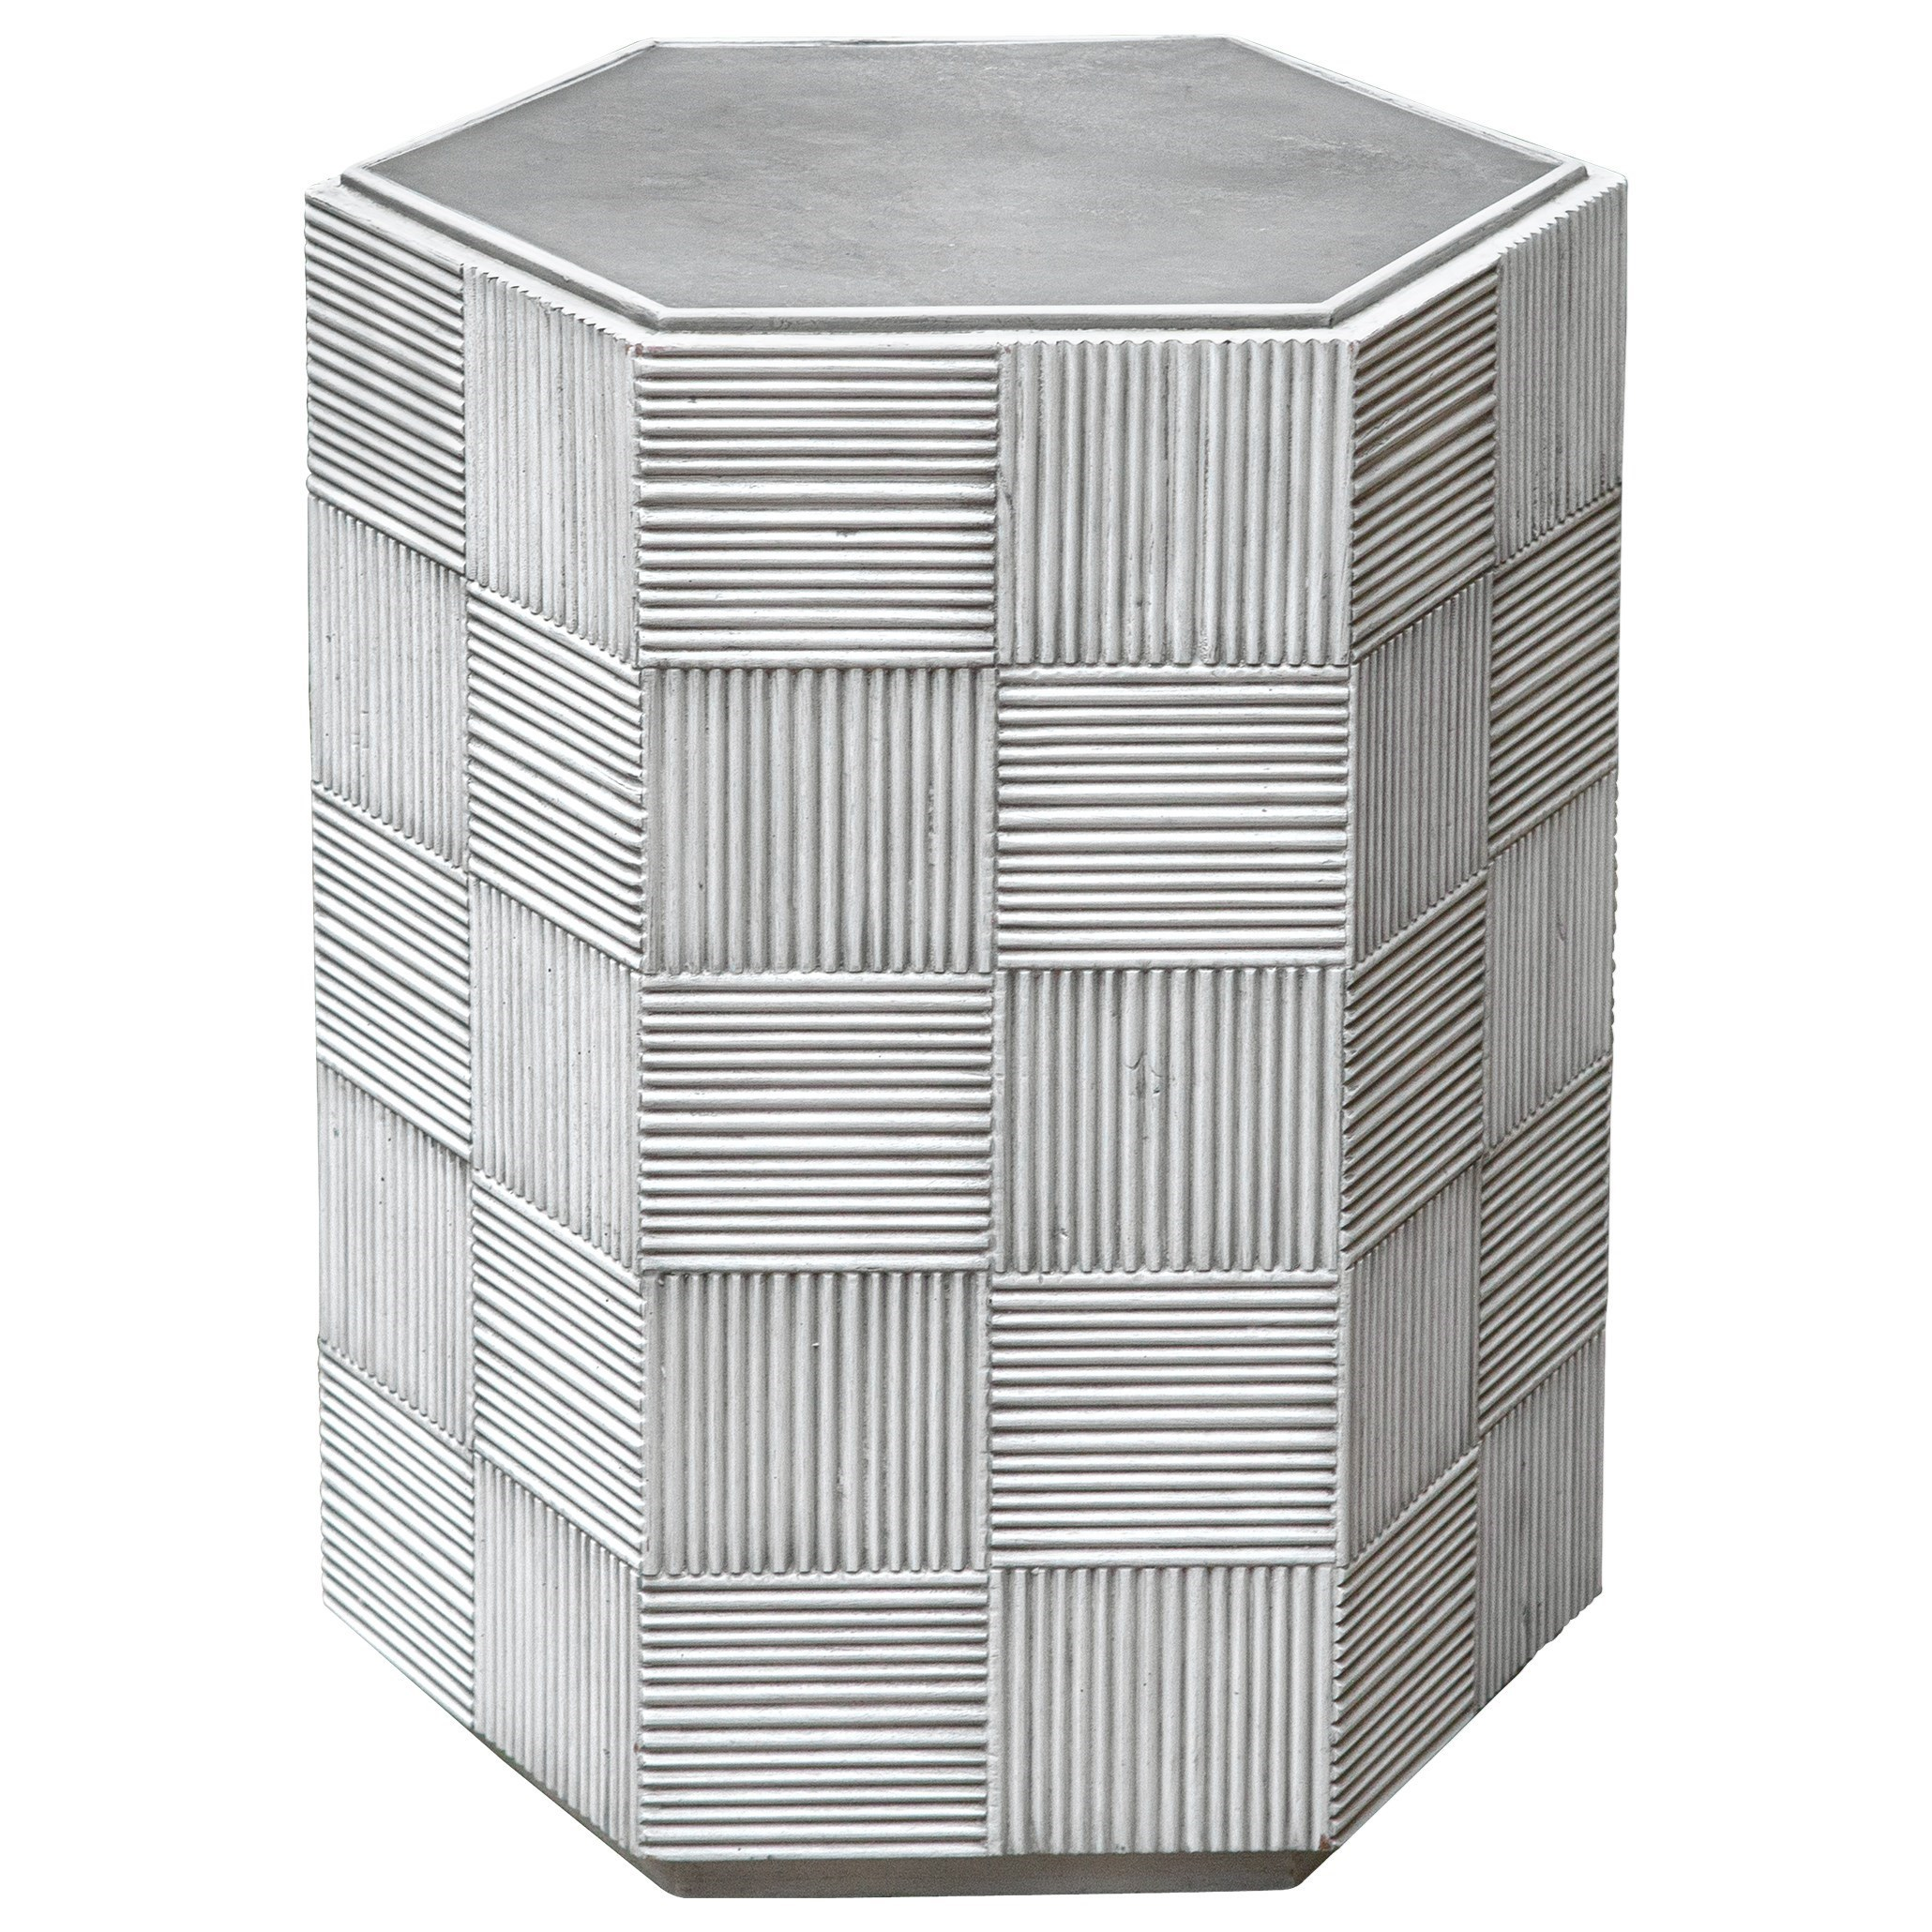 Accent Furniture - Occasional Tables Silo Hexagonal Accent Table by Uttermost at Del Sol Furniture